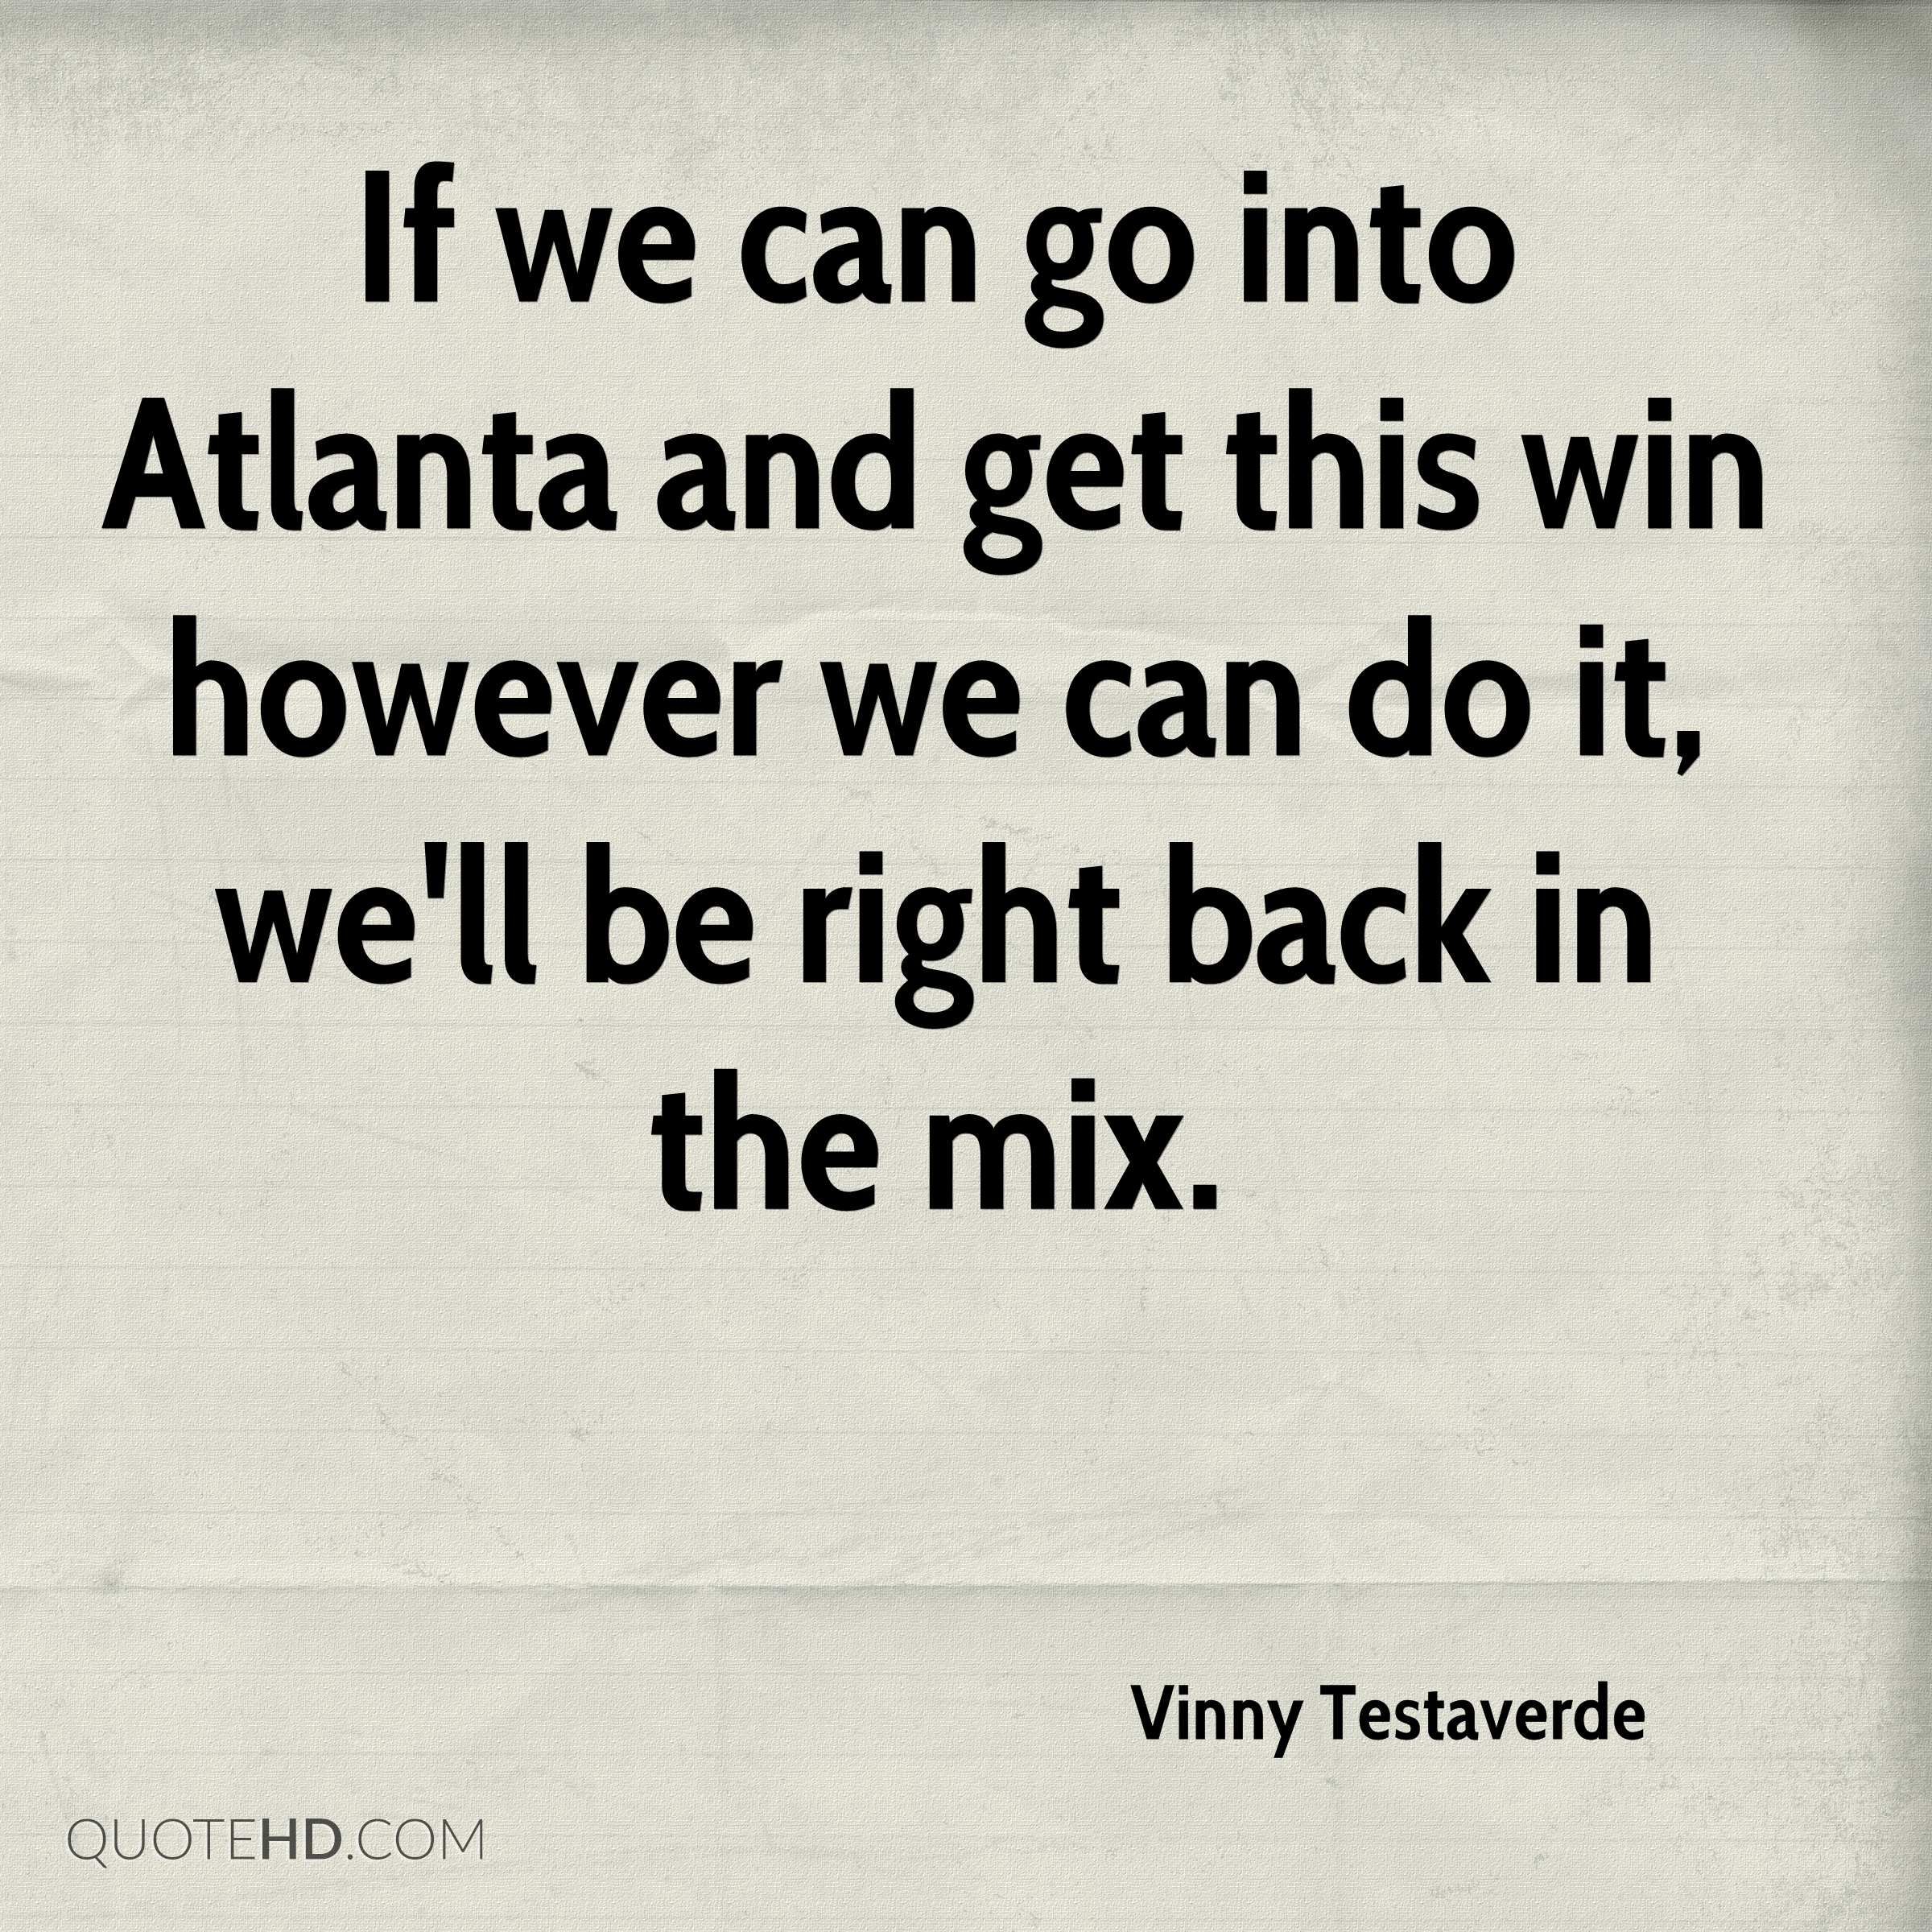 If we can go into Atlanta and get this win however we can do it, we'll be right back in the mix.